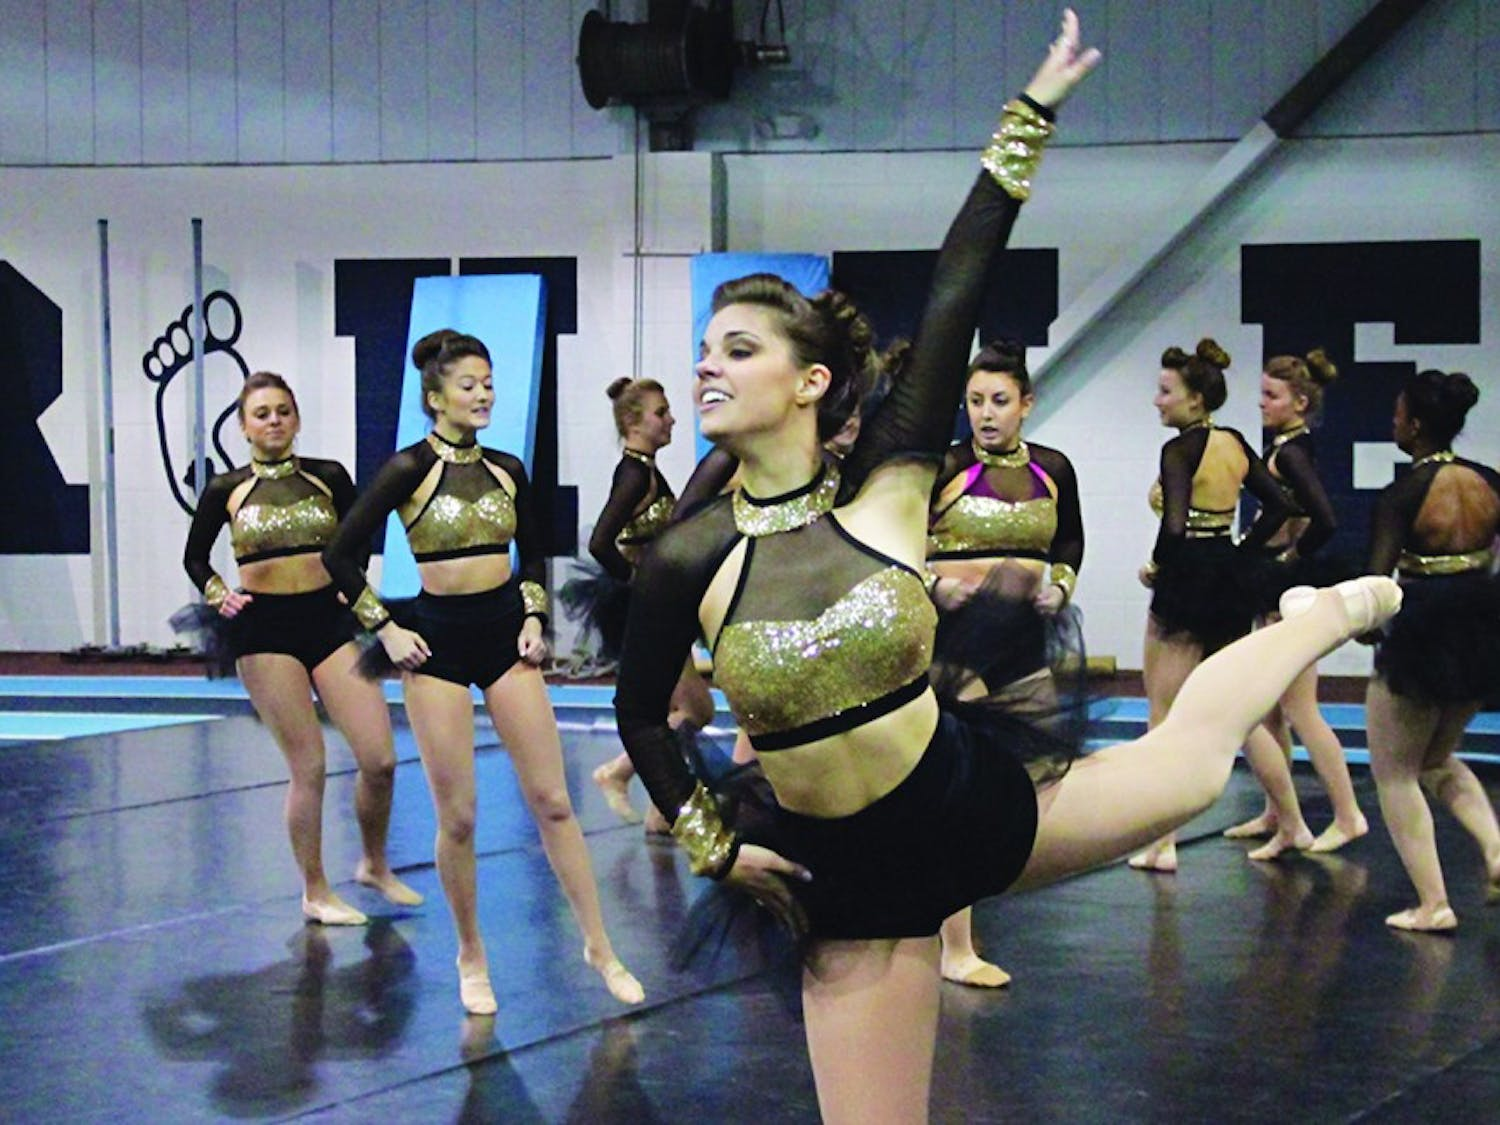 Second year senior Taylor Hartzog performs at the UNC Dance Team's spring showcase